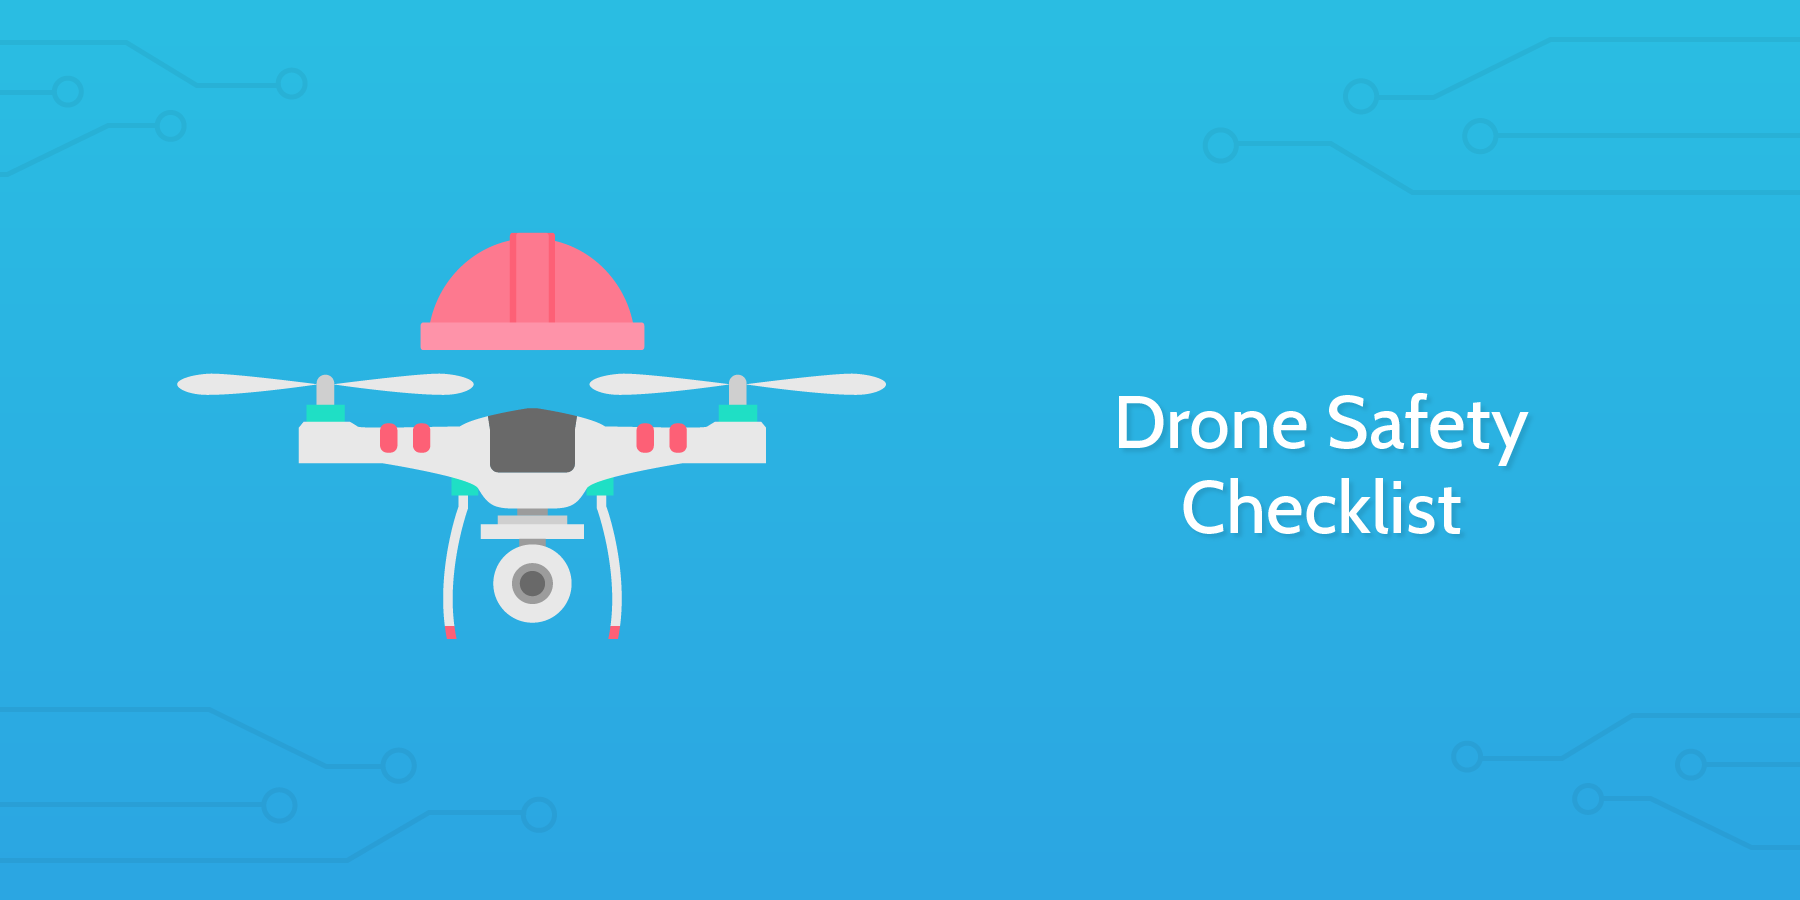 Drone Safety Checklist